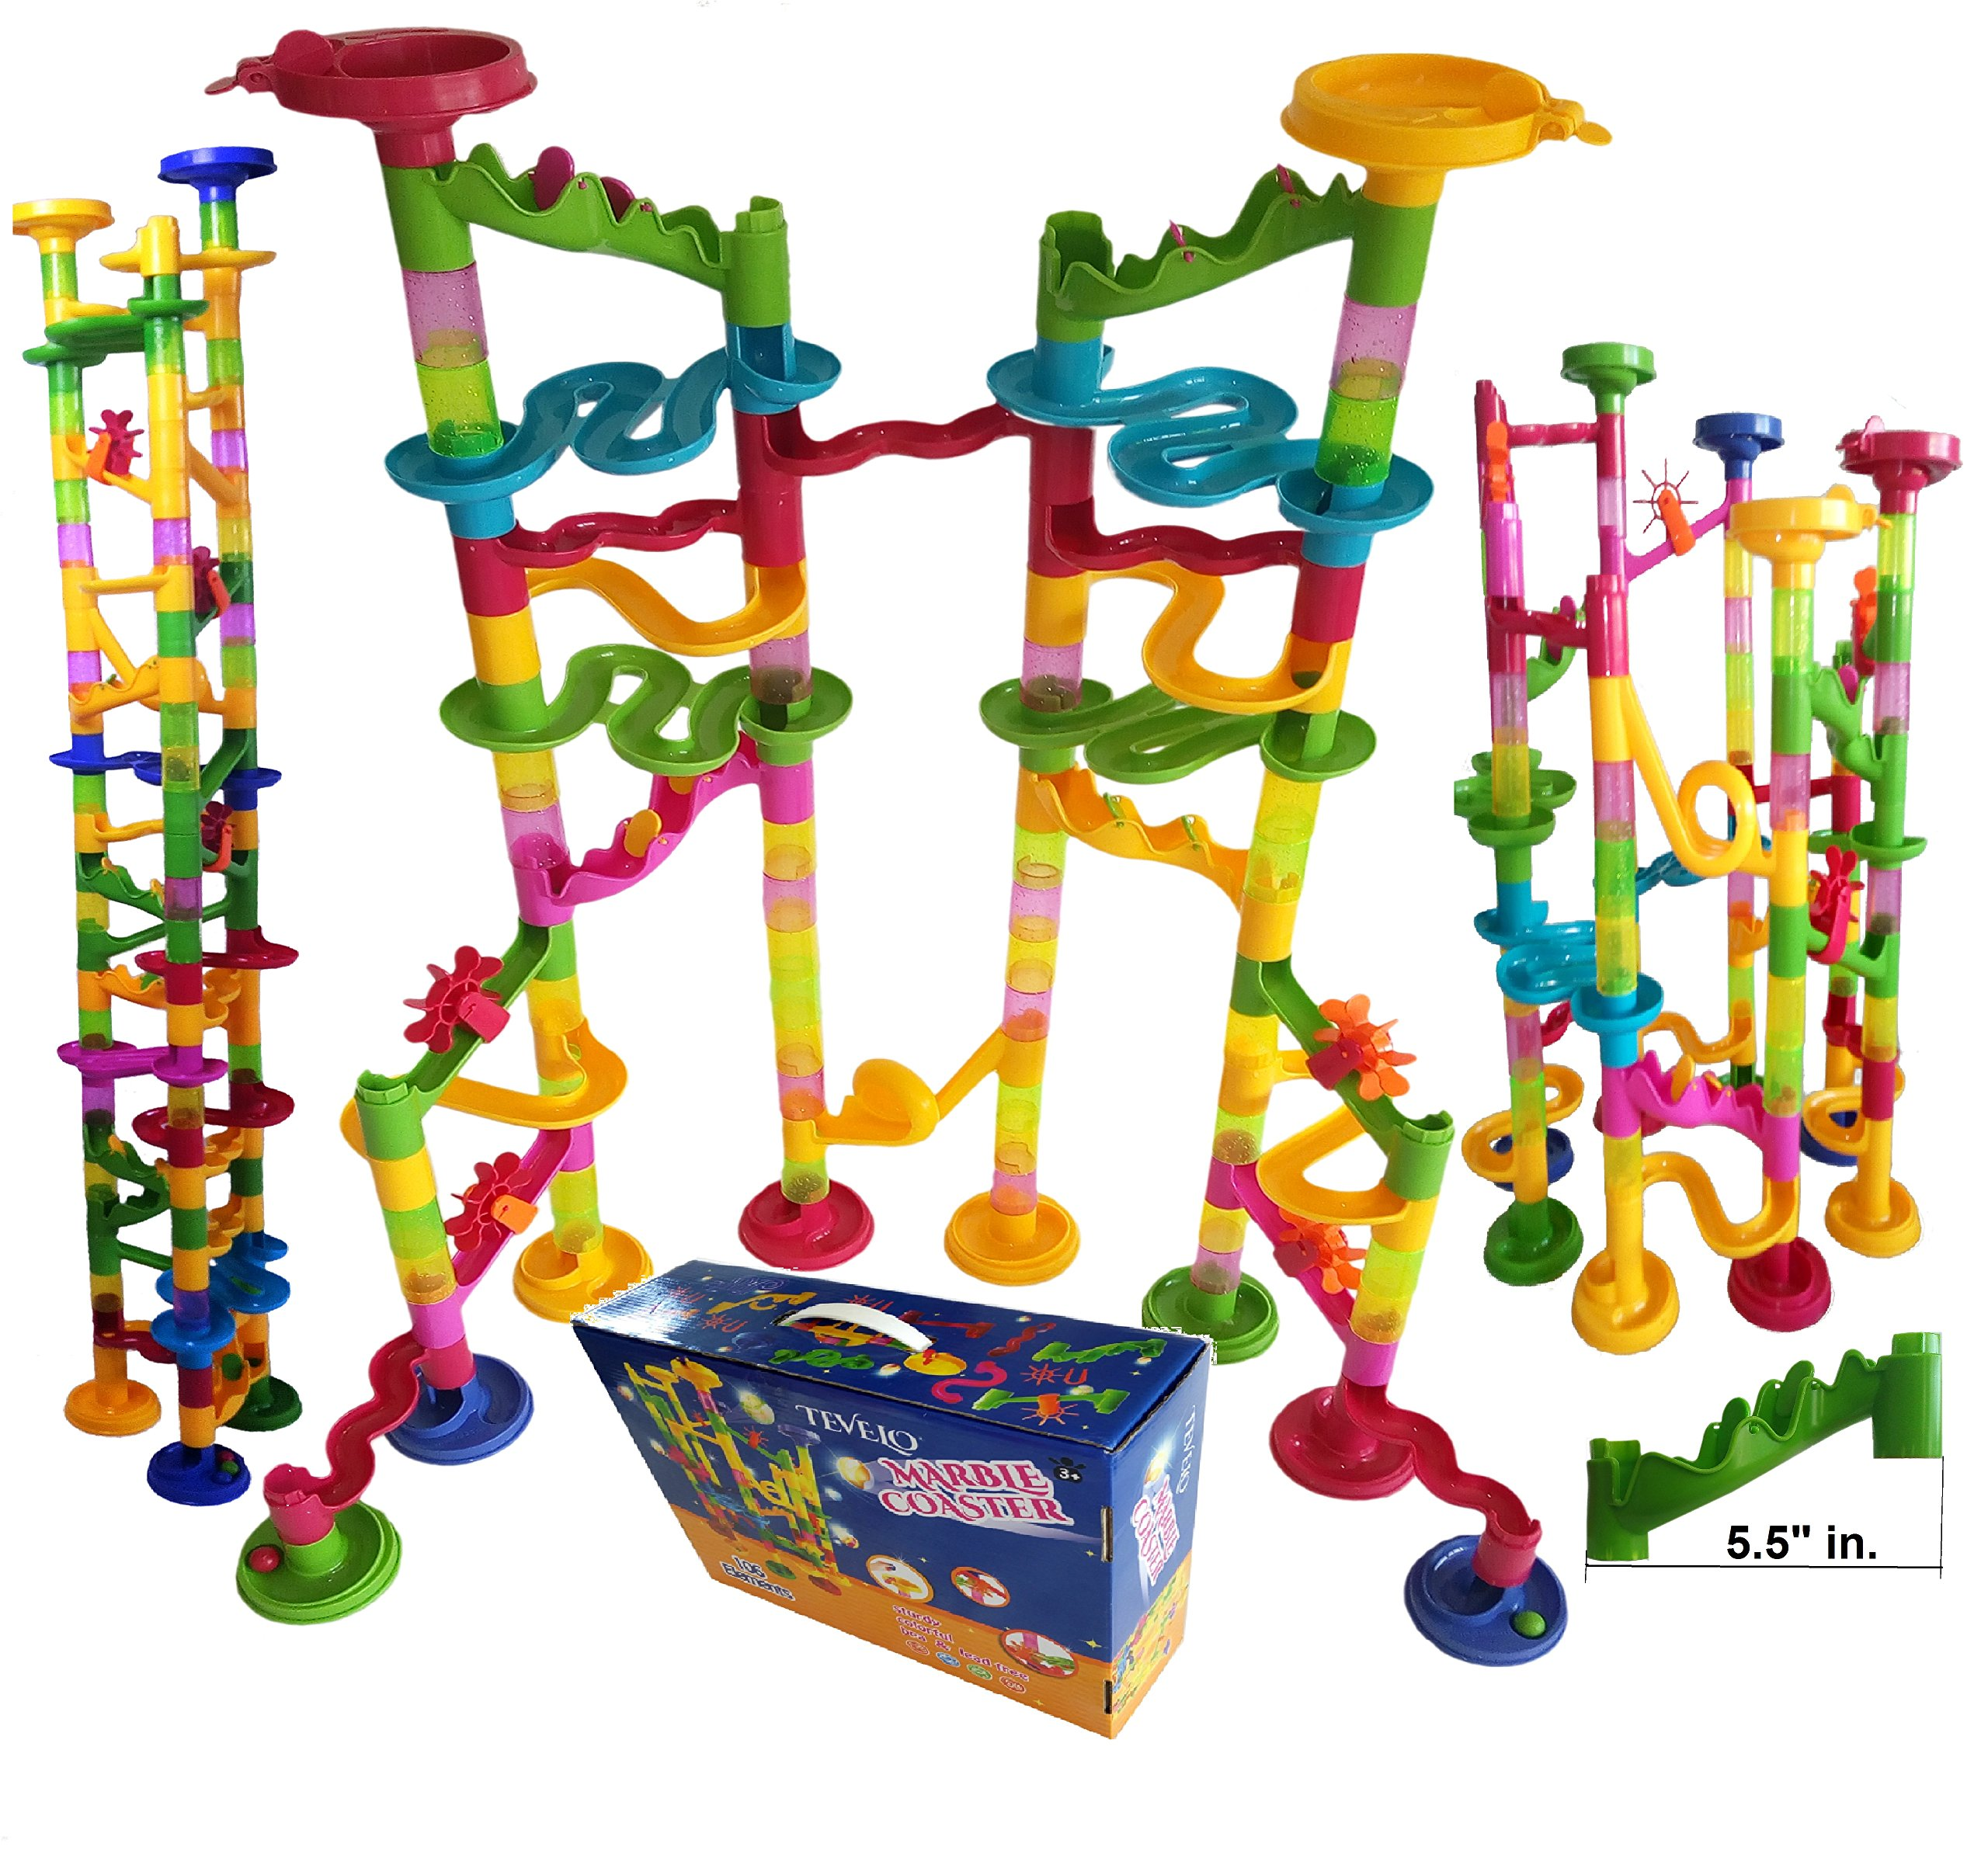 Marble Run Coaster 106 BIG Elements Kit 76 Blocks+30 Plastic Marbles. Tracks length 194'' Genius Fun Set. Learning Railway Construction. TEVELO DIY Endless Design Maze, Classic Toy for Family.